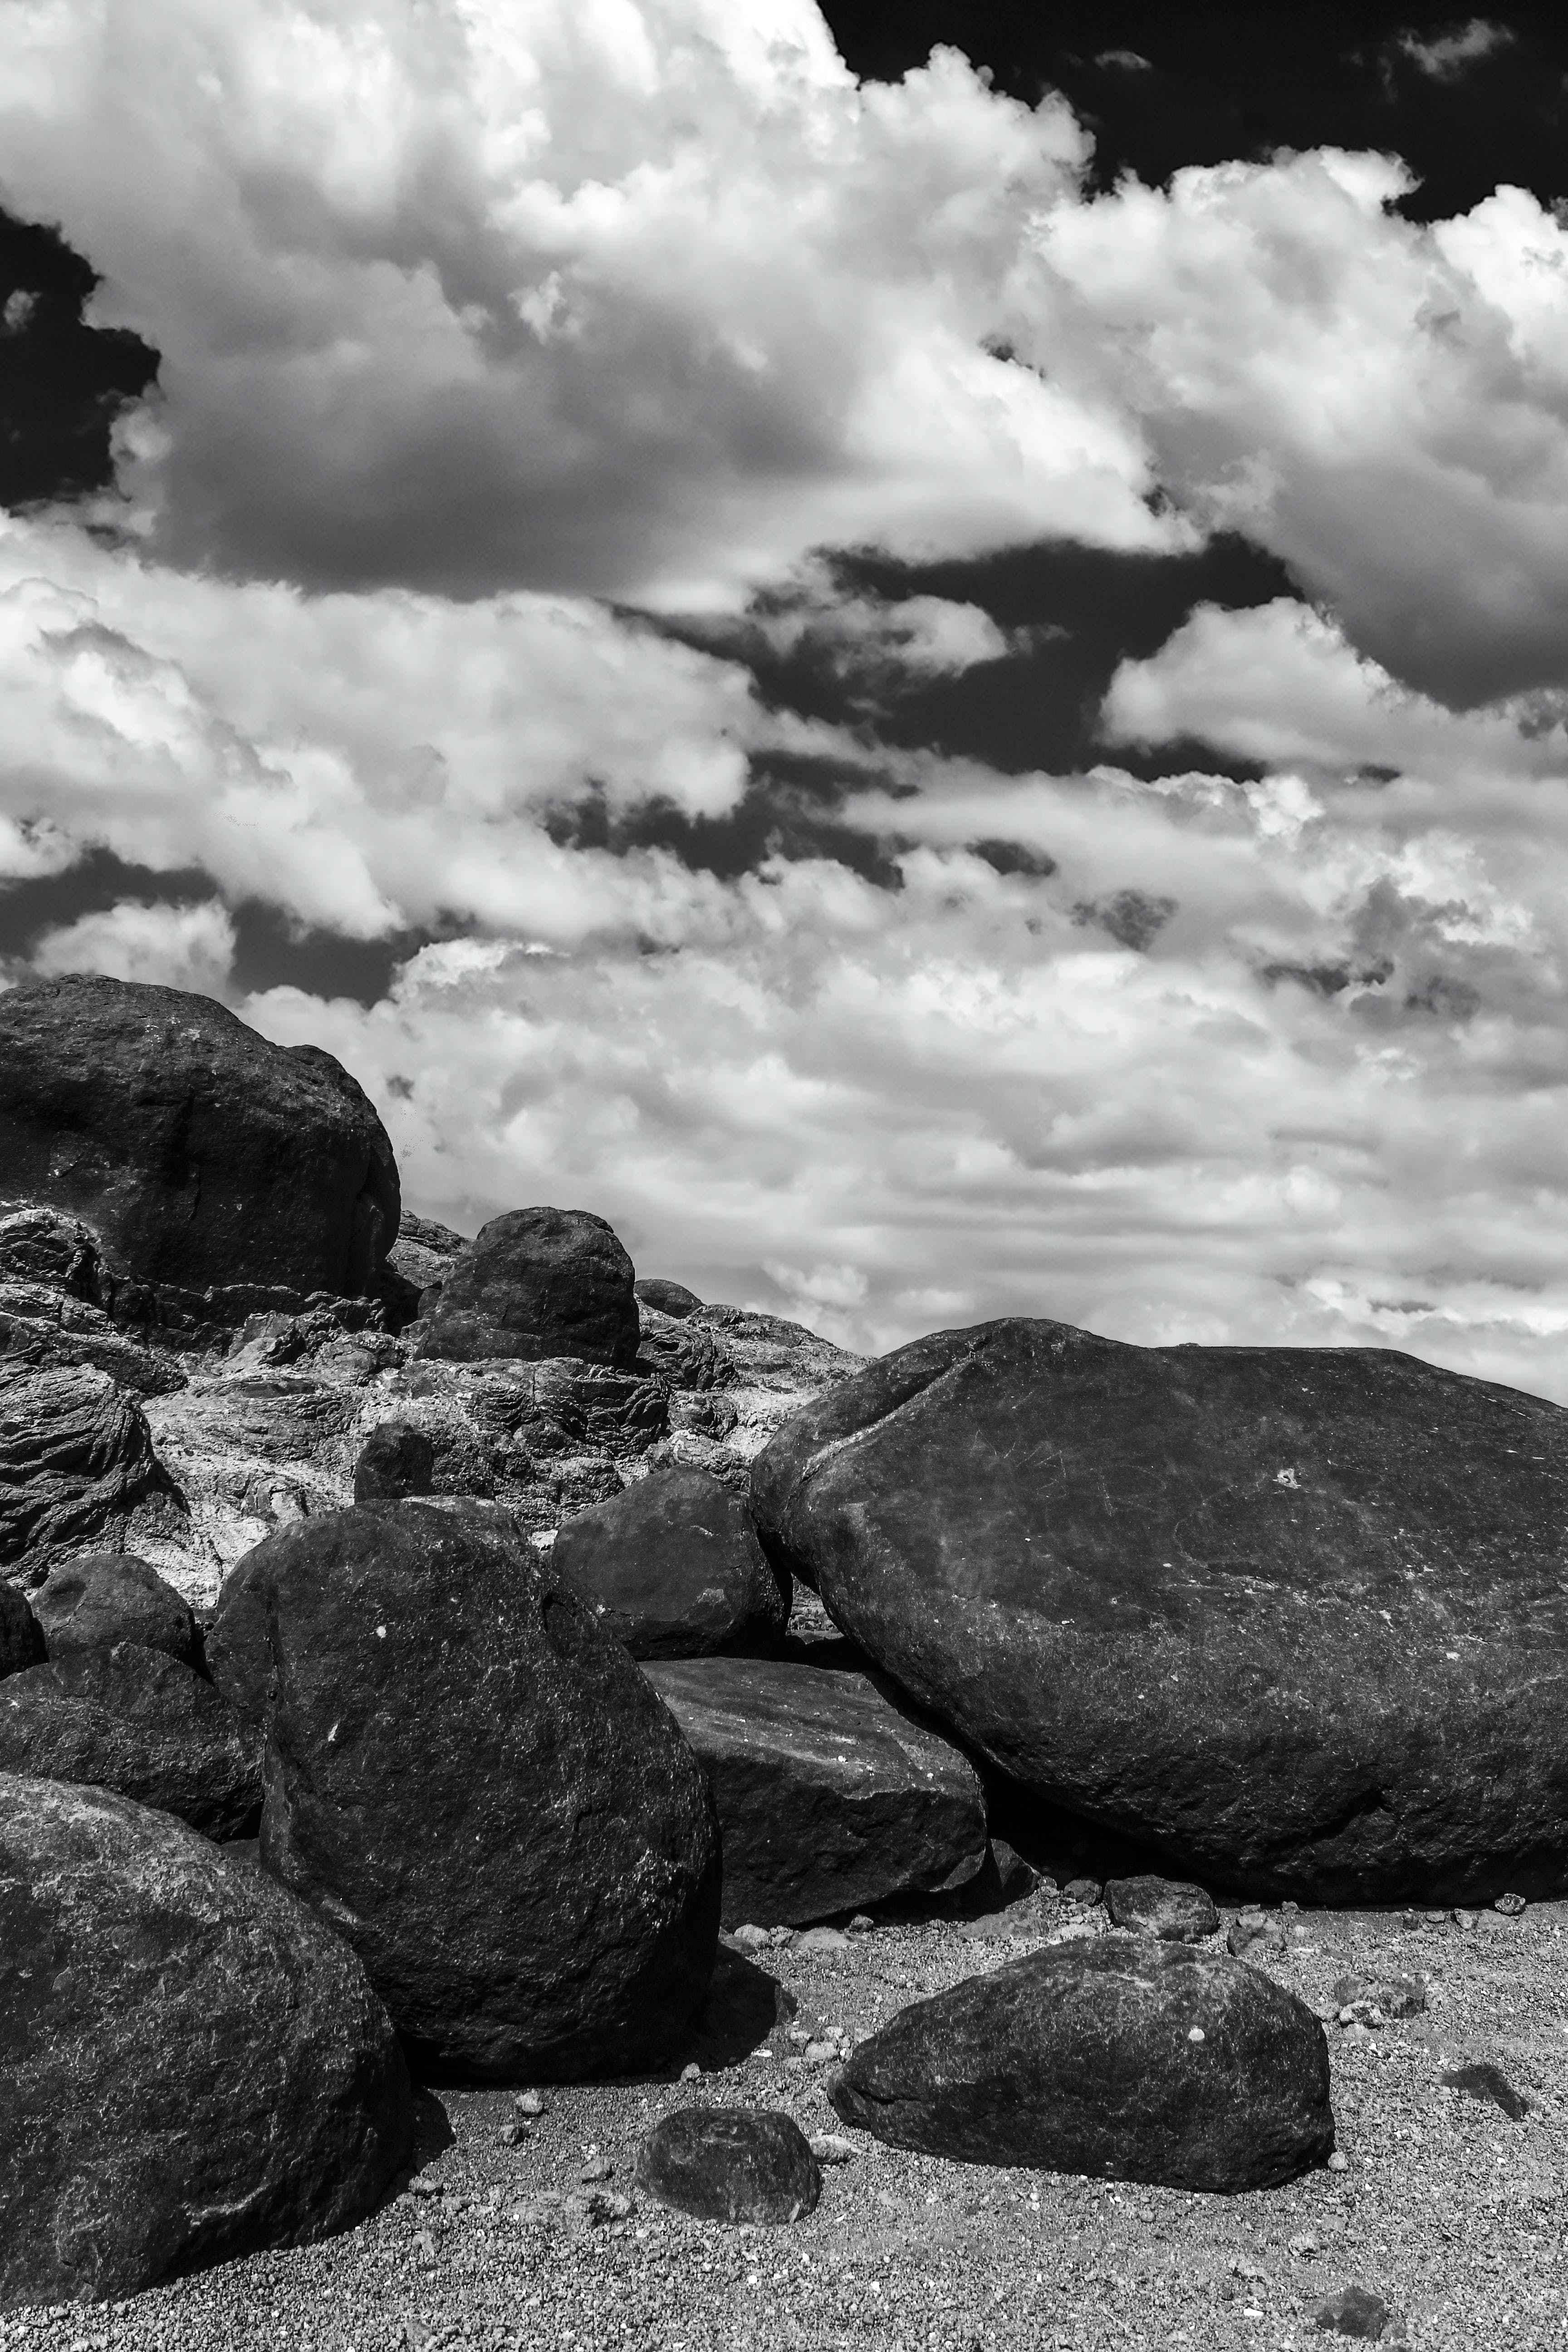 Gray Scale Photo Rocks and Clouds